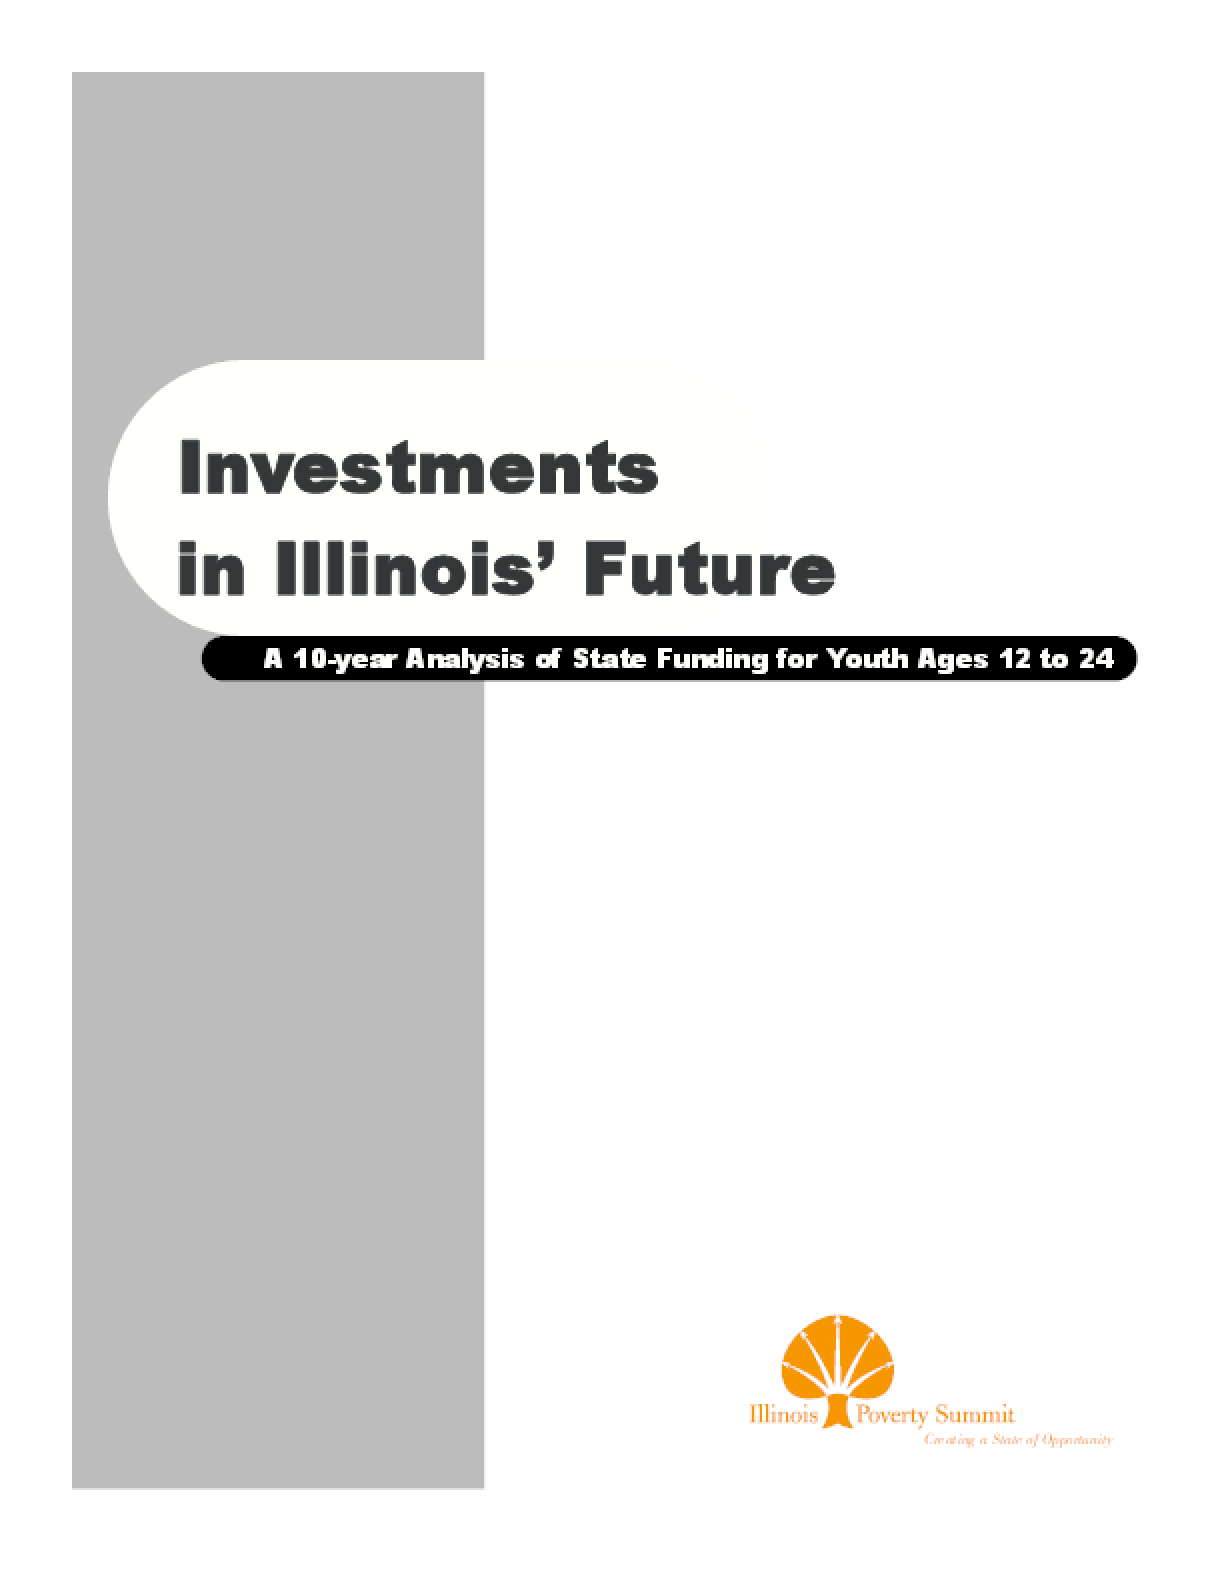 Investments in Illinois' Future: A 10-year Analysis of State Funding for Youth Ages 12-24